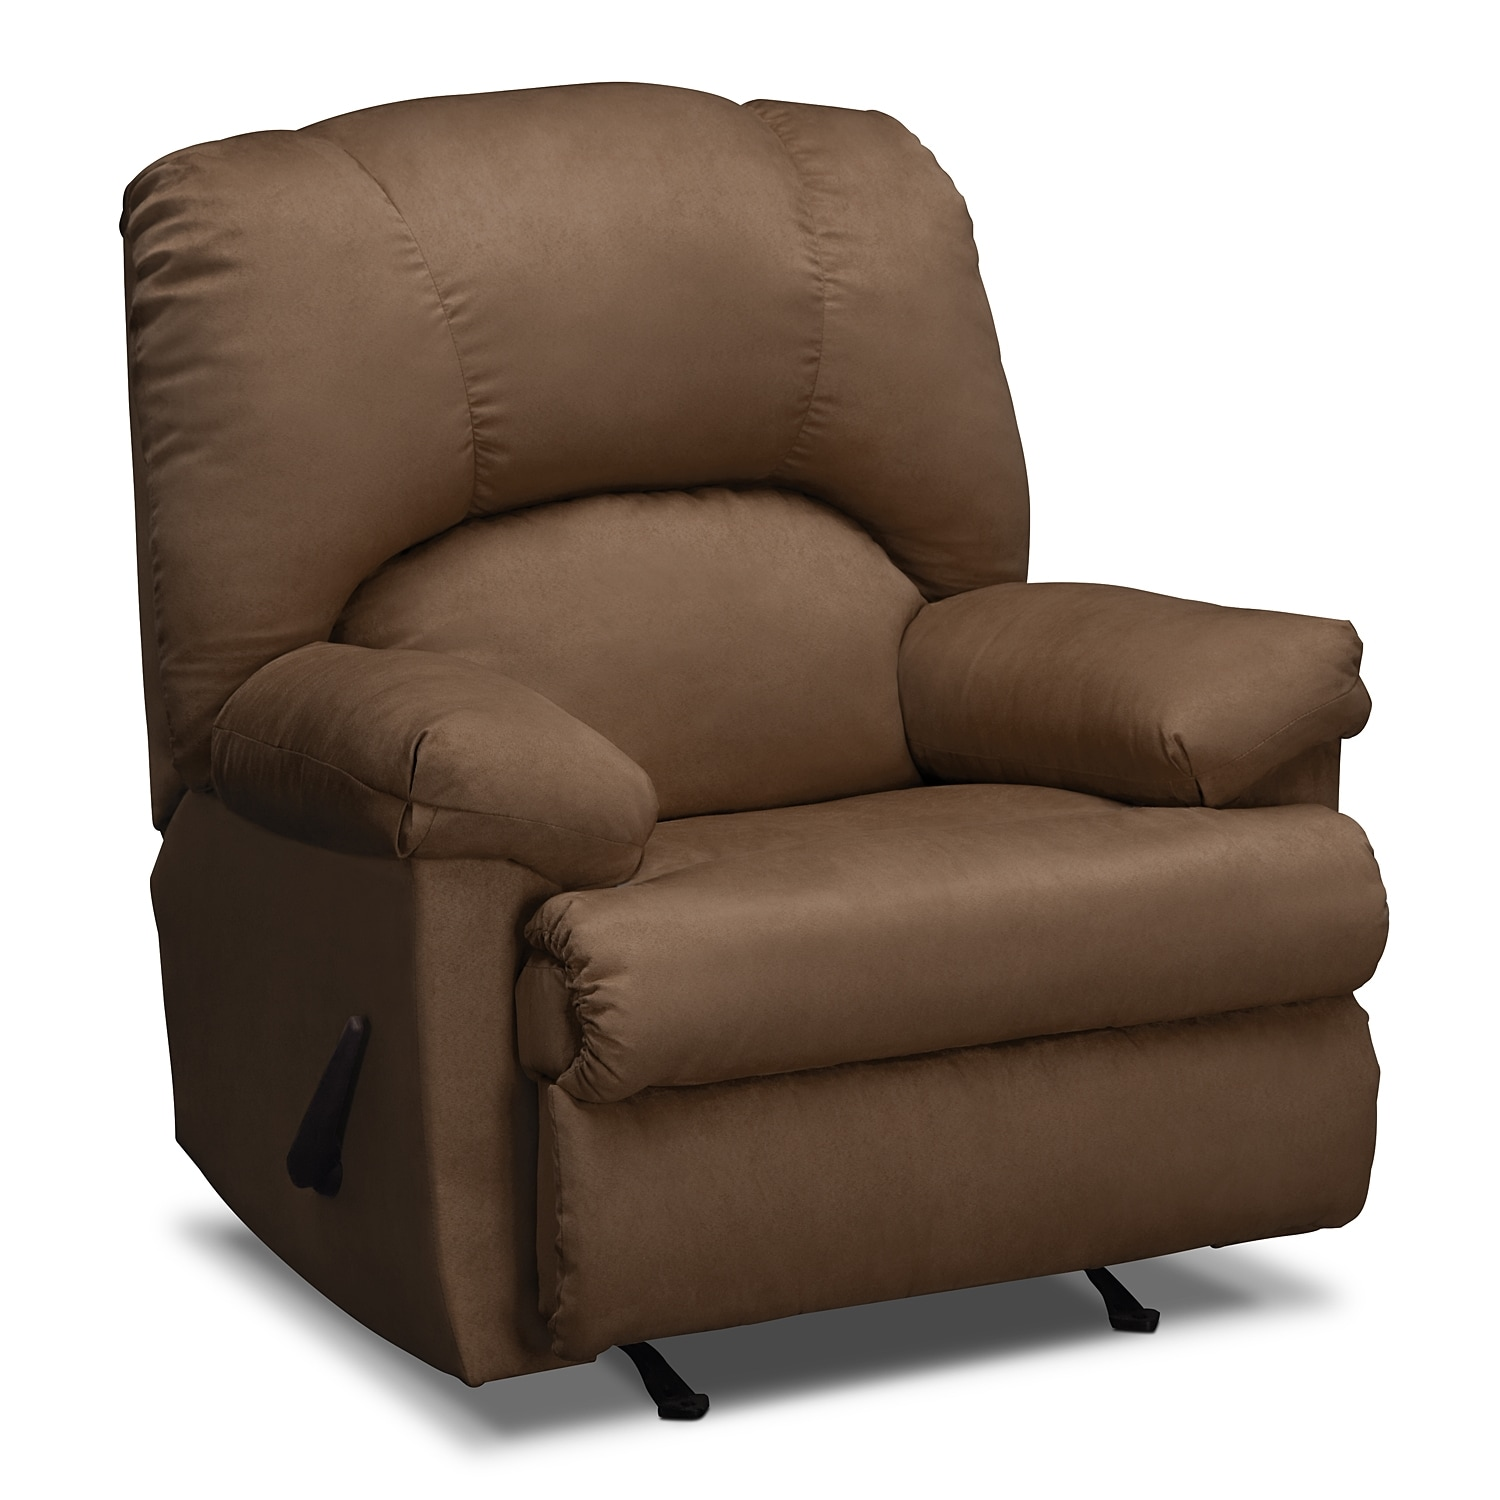 Deals on rocker recliners